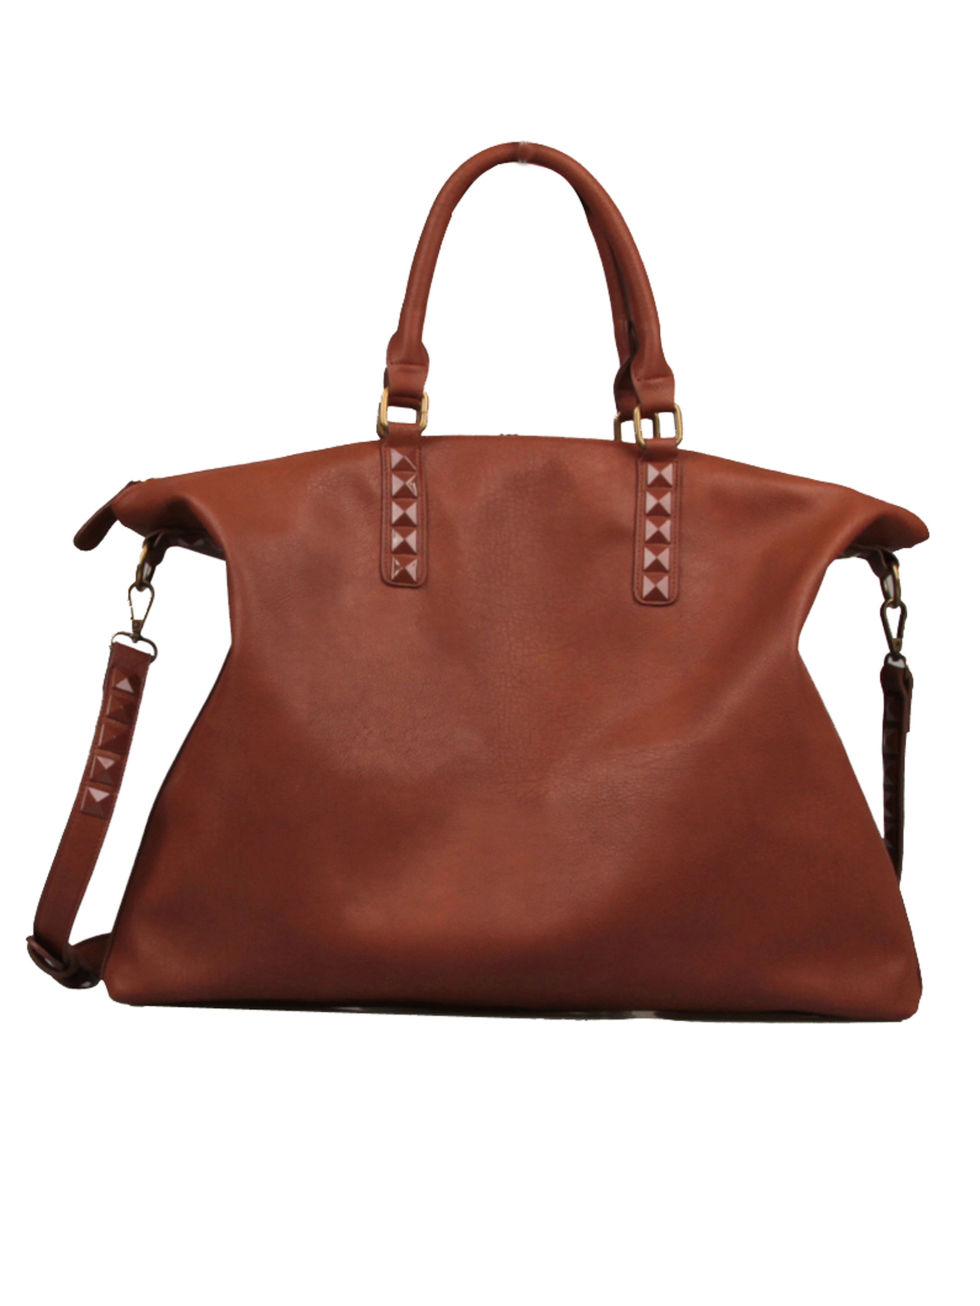 83 Best Fall 2013 Handbags - Affordable Fall Bags Under 100